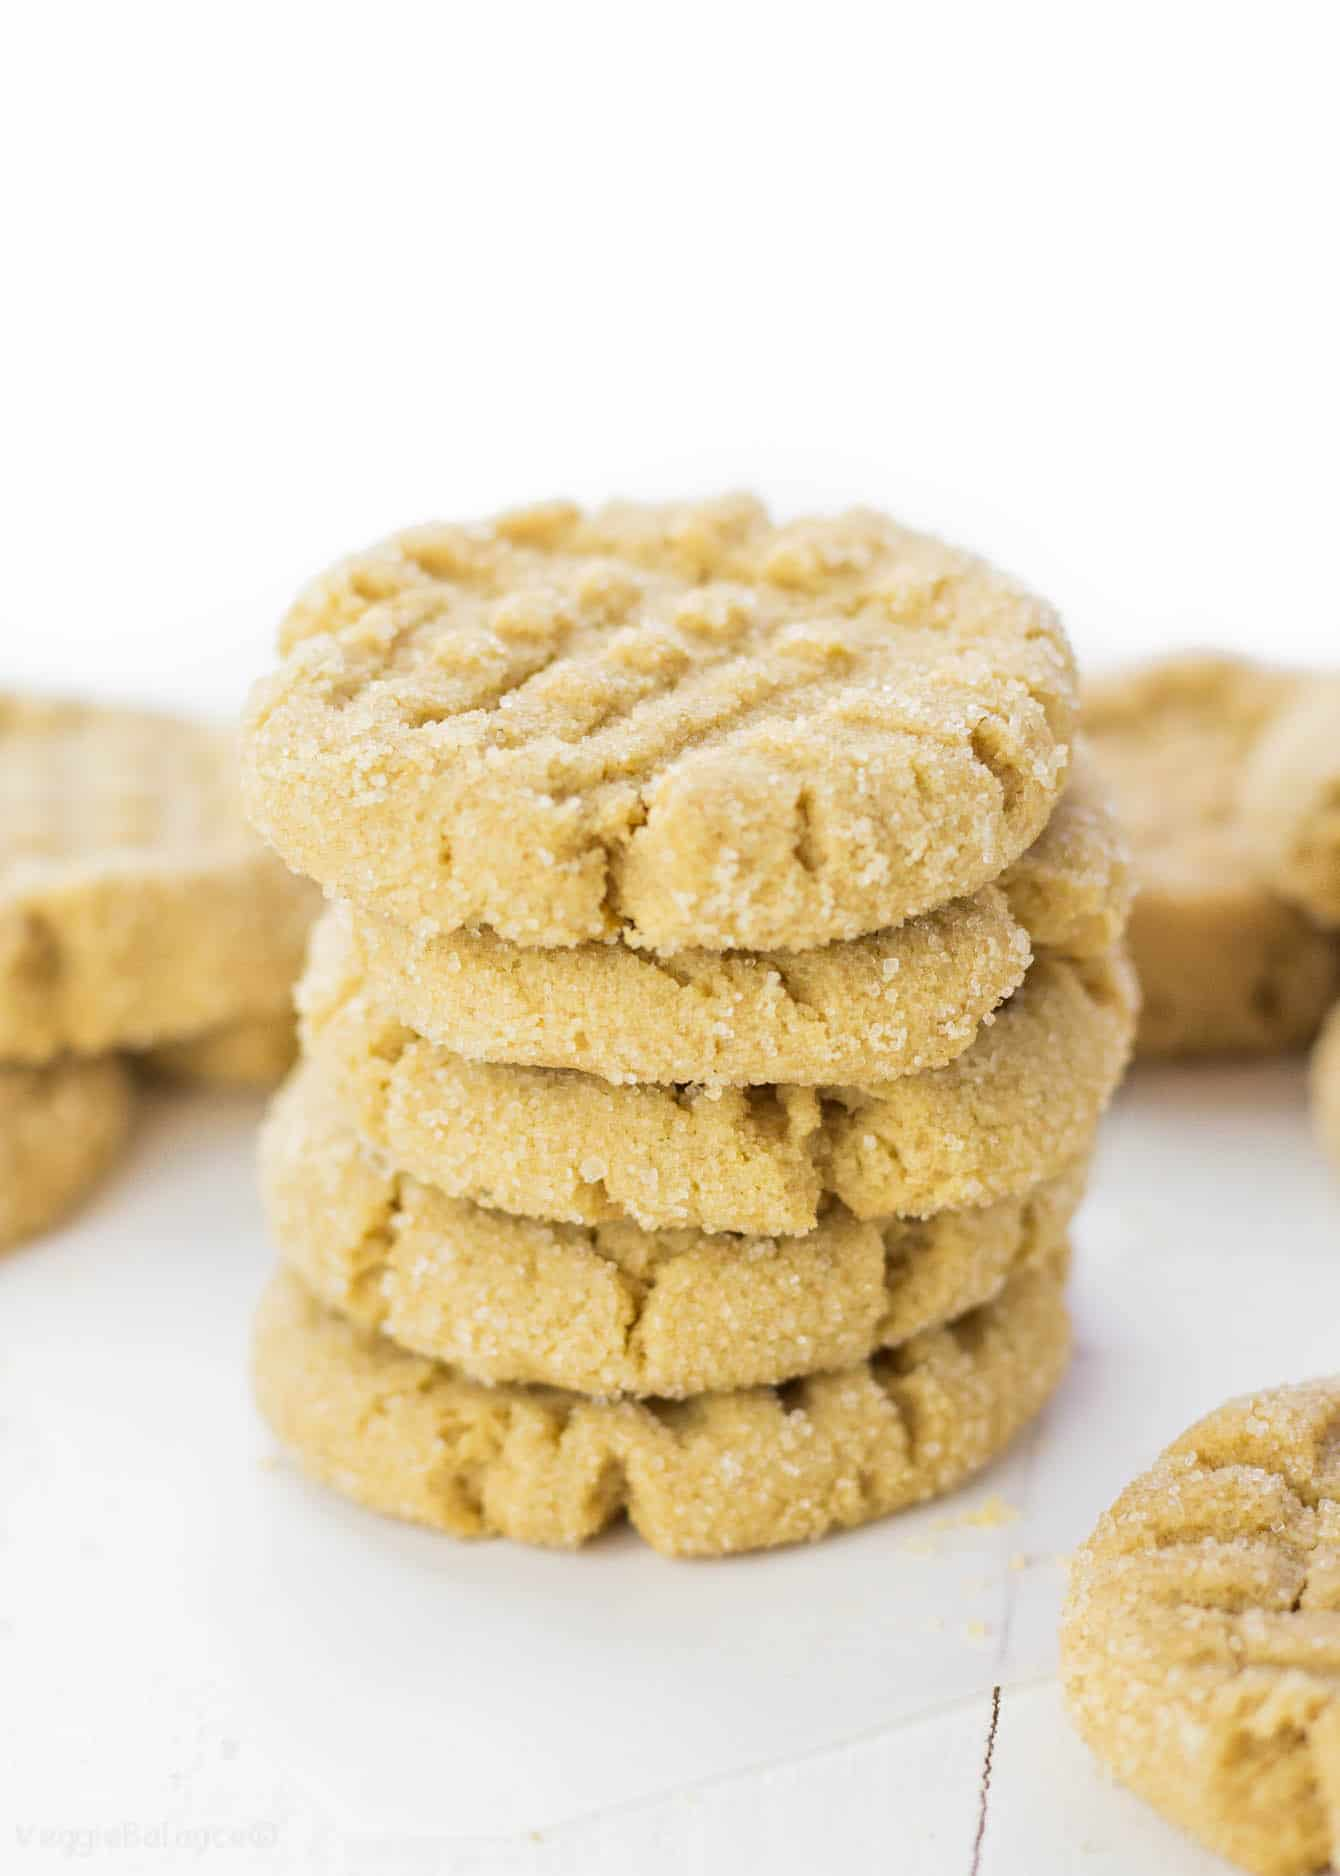 Gluten Free Peanut Butter Cookies that are the real deal. Packed full of peanut butter flavor and perfectly mimicking the classic peanut butter cookie you grew up loving. (Gluten Free, Dairy Free, Vegan Friendly)